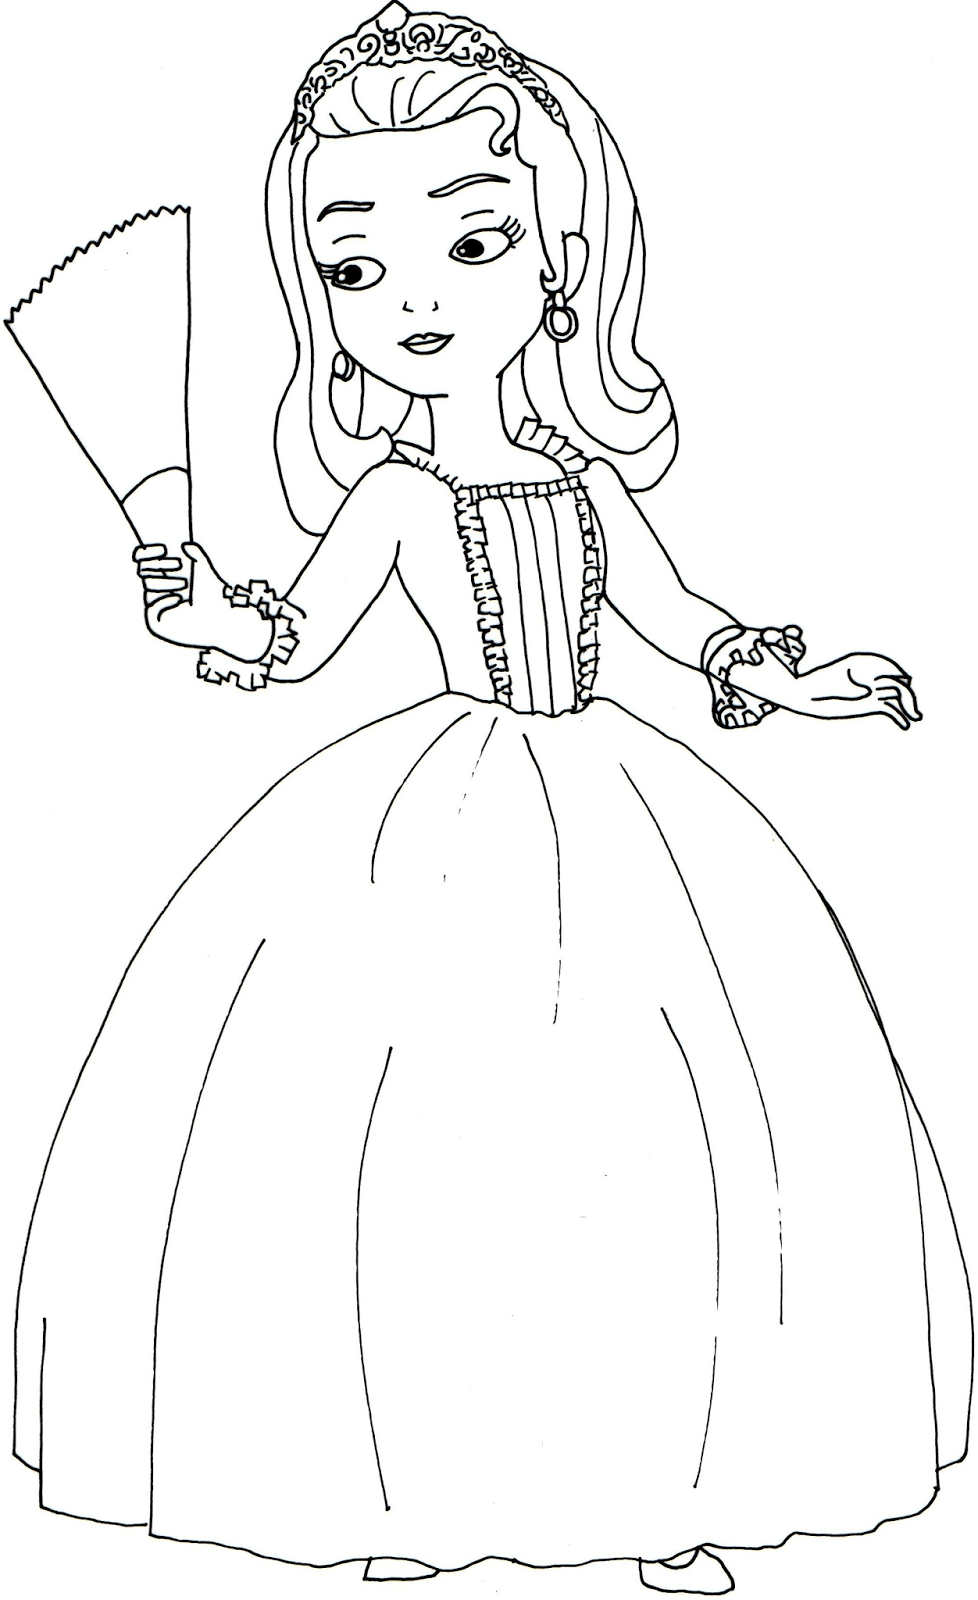 Princess amber sofia the first coloring page